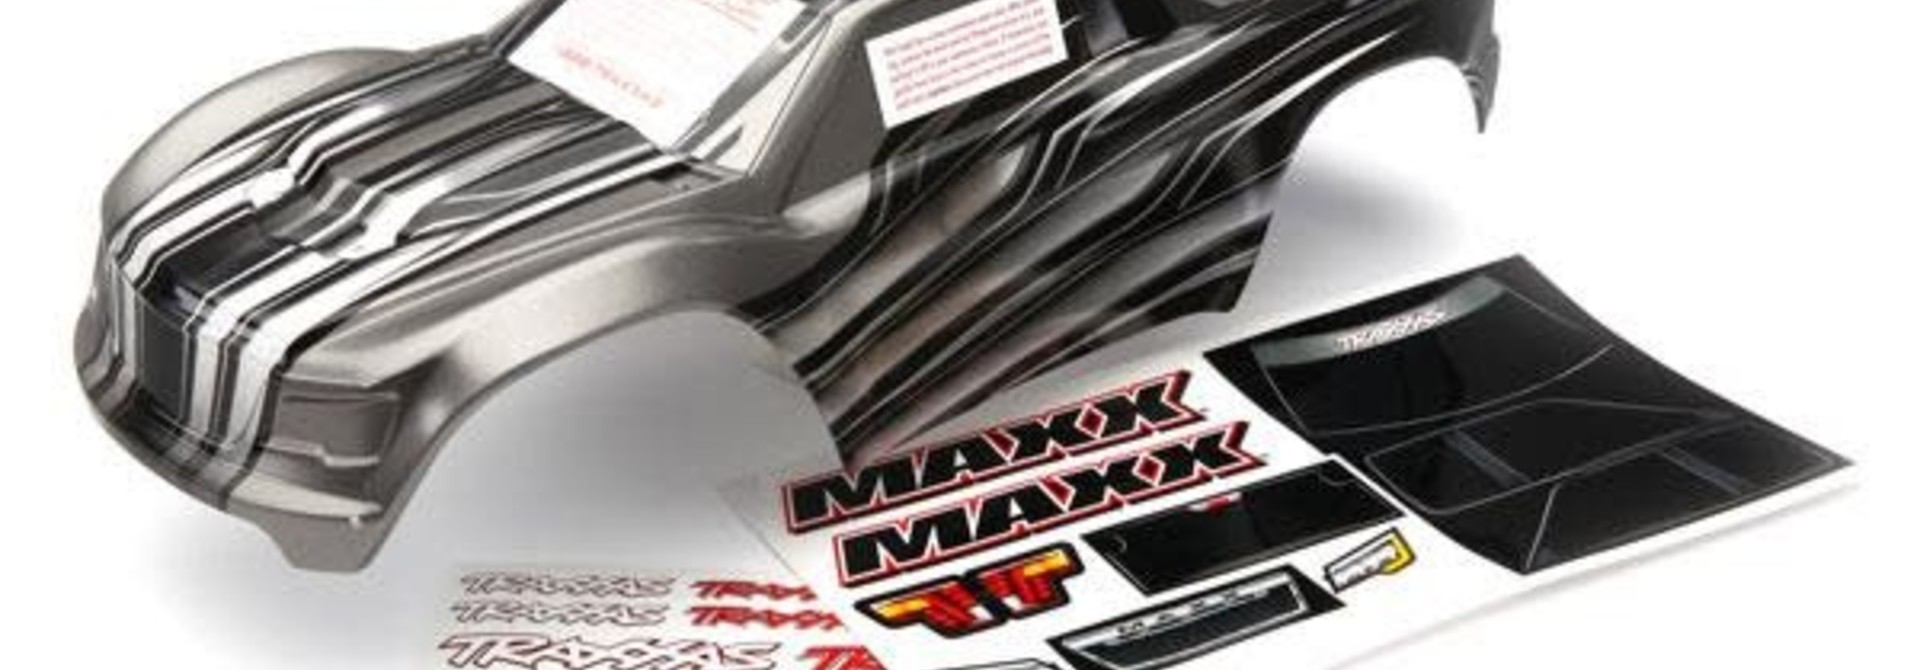 Body, Maxx, ProGraphix (graphics are printed, requires paint & final color appli